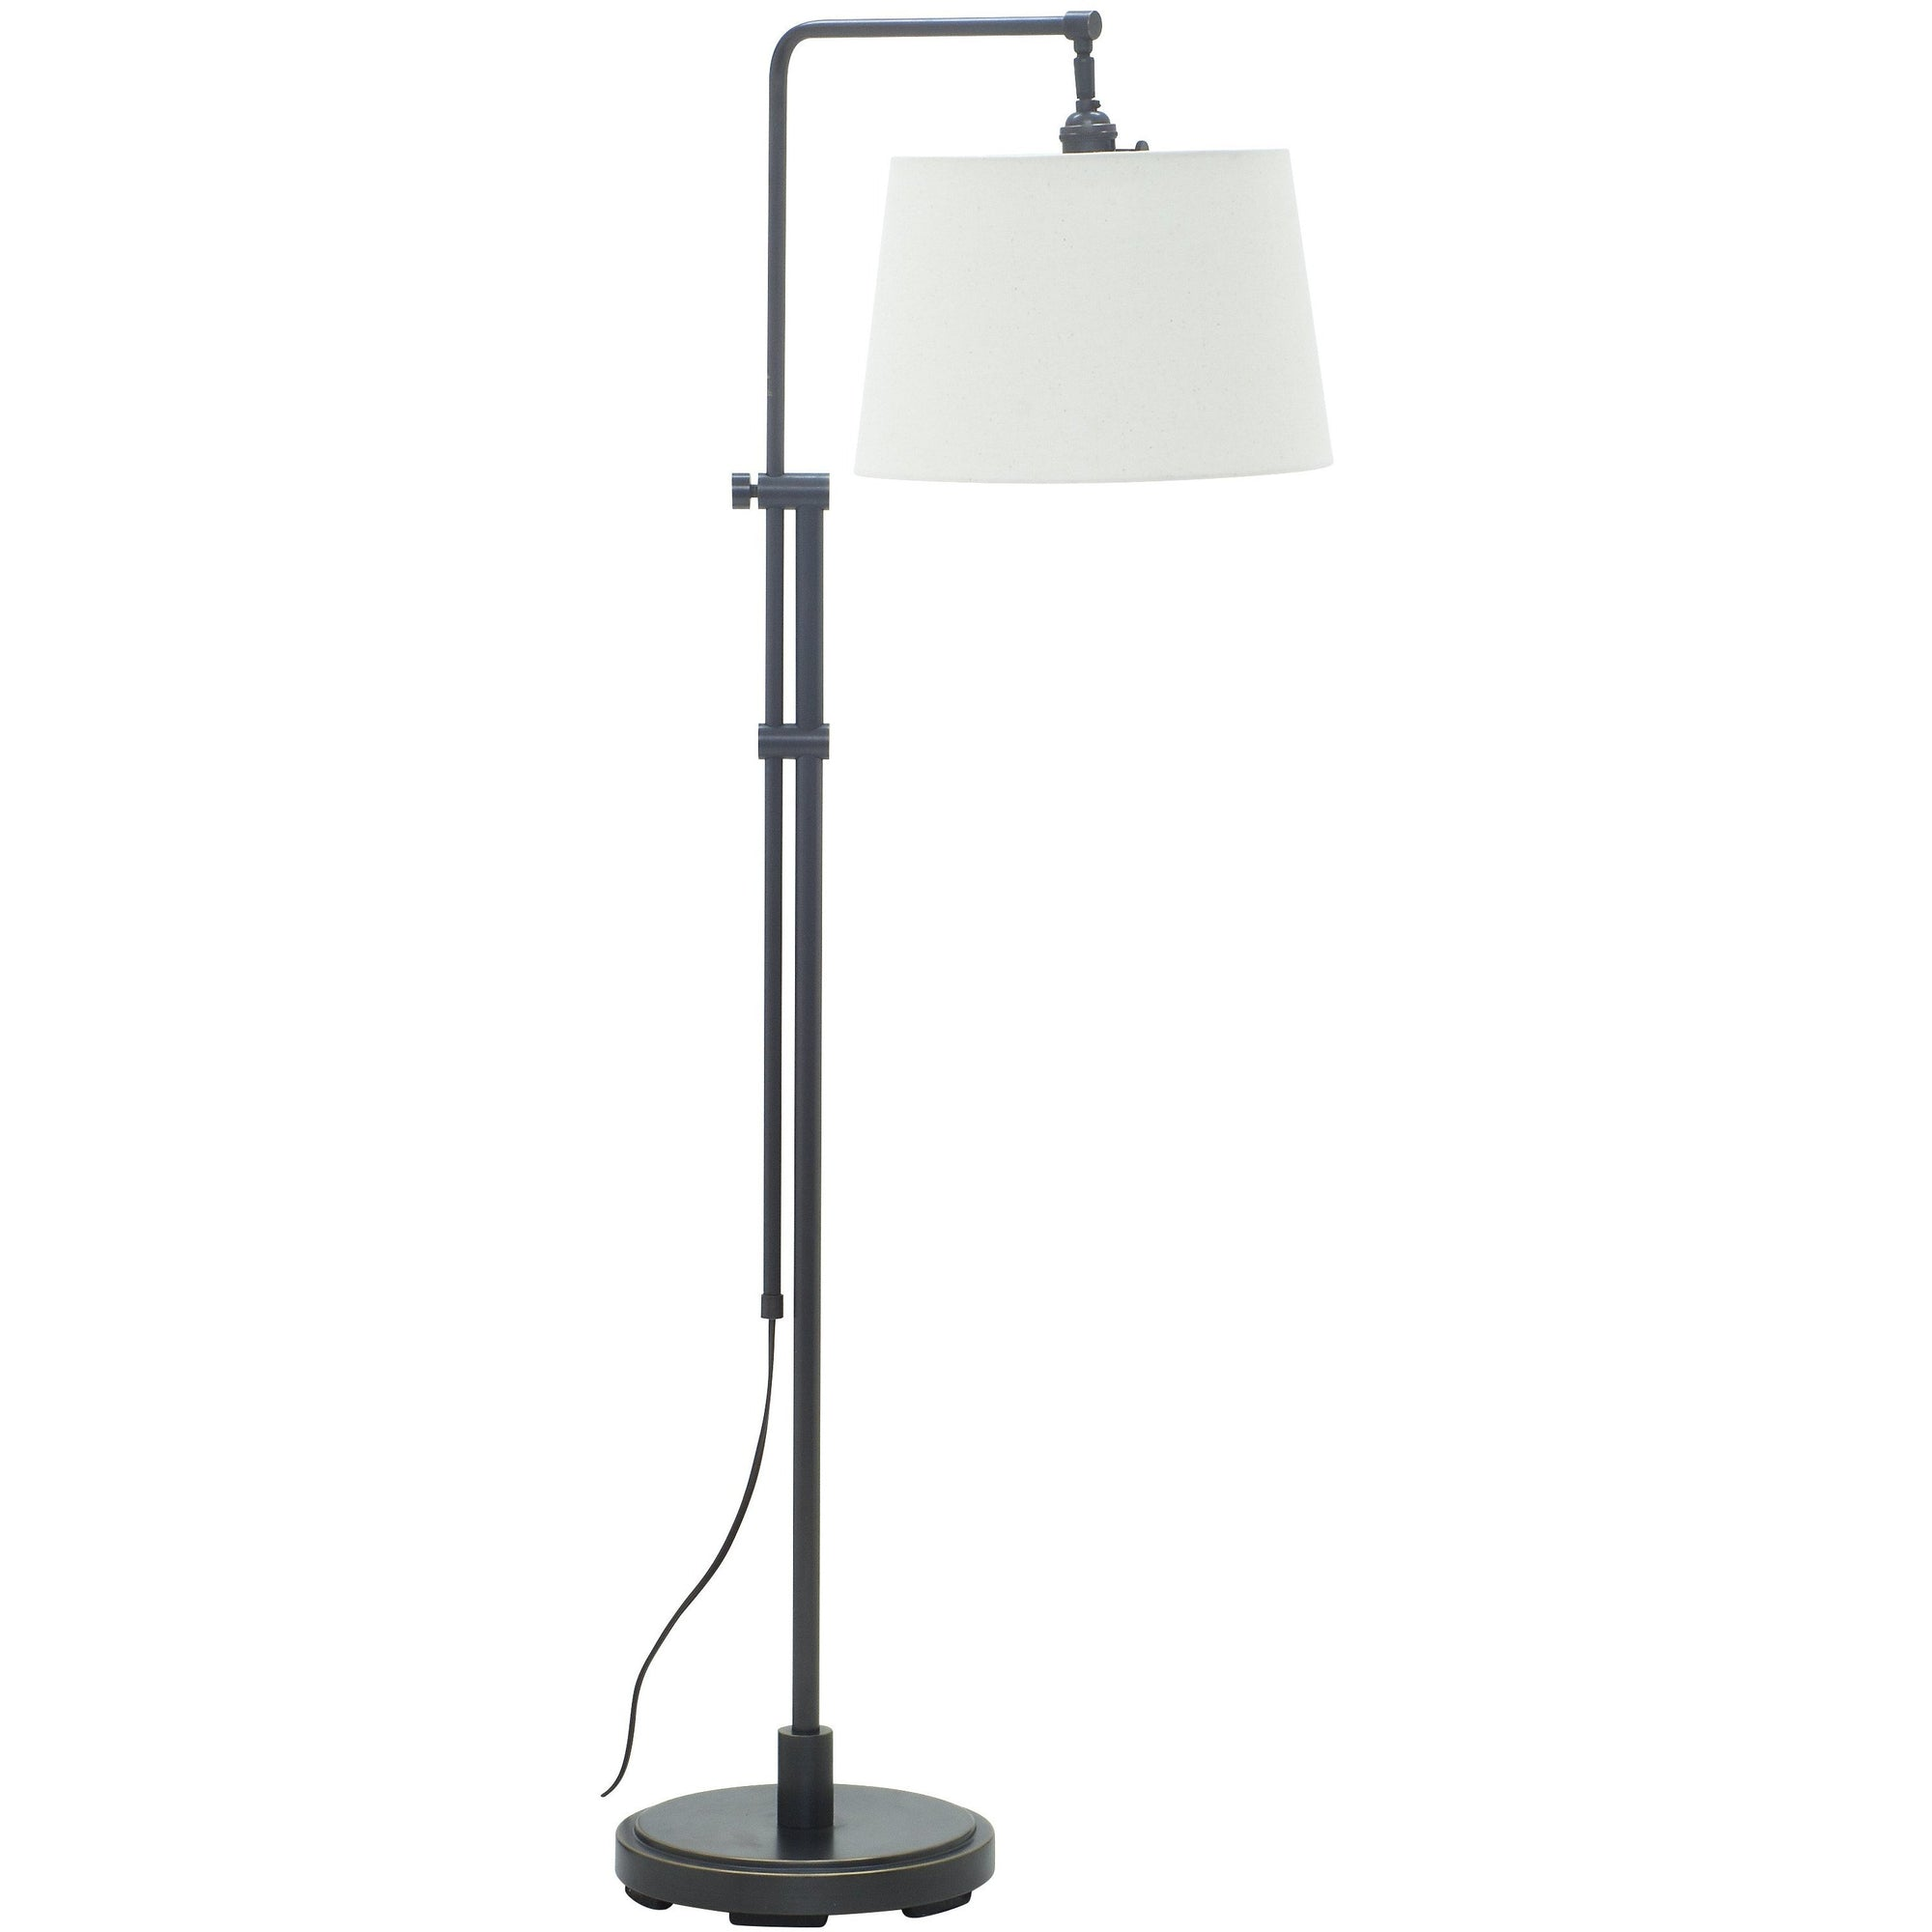 House Of Troy Floor Lamps Crown Point Adjustable Downbridge Floor Lamp by House Of Troy CR700-OB